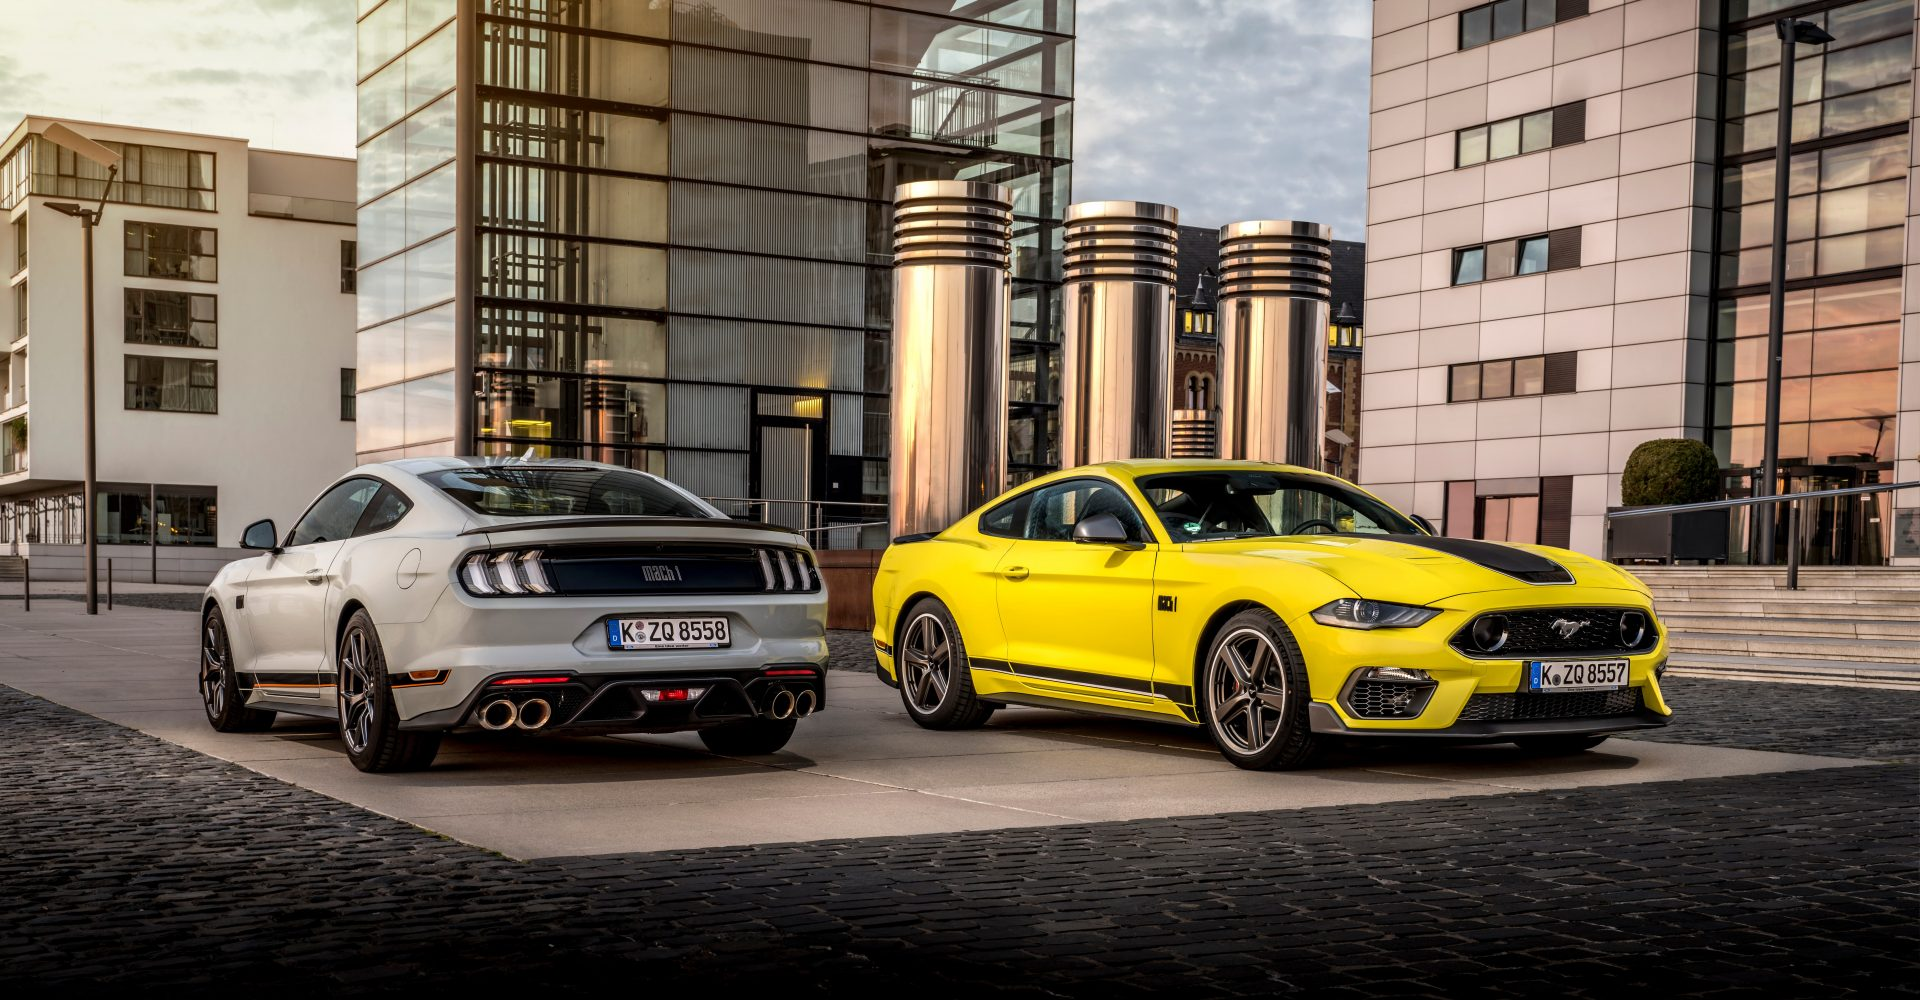 High-performance Ford Mustang Mach 1 coming to Europe for the first time